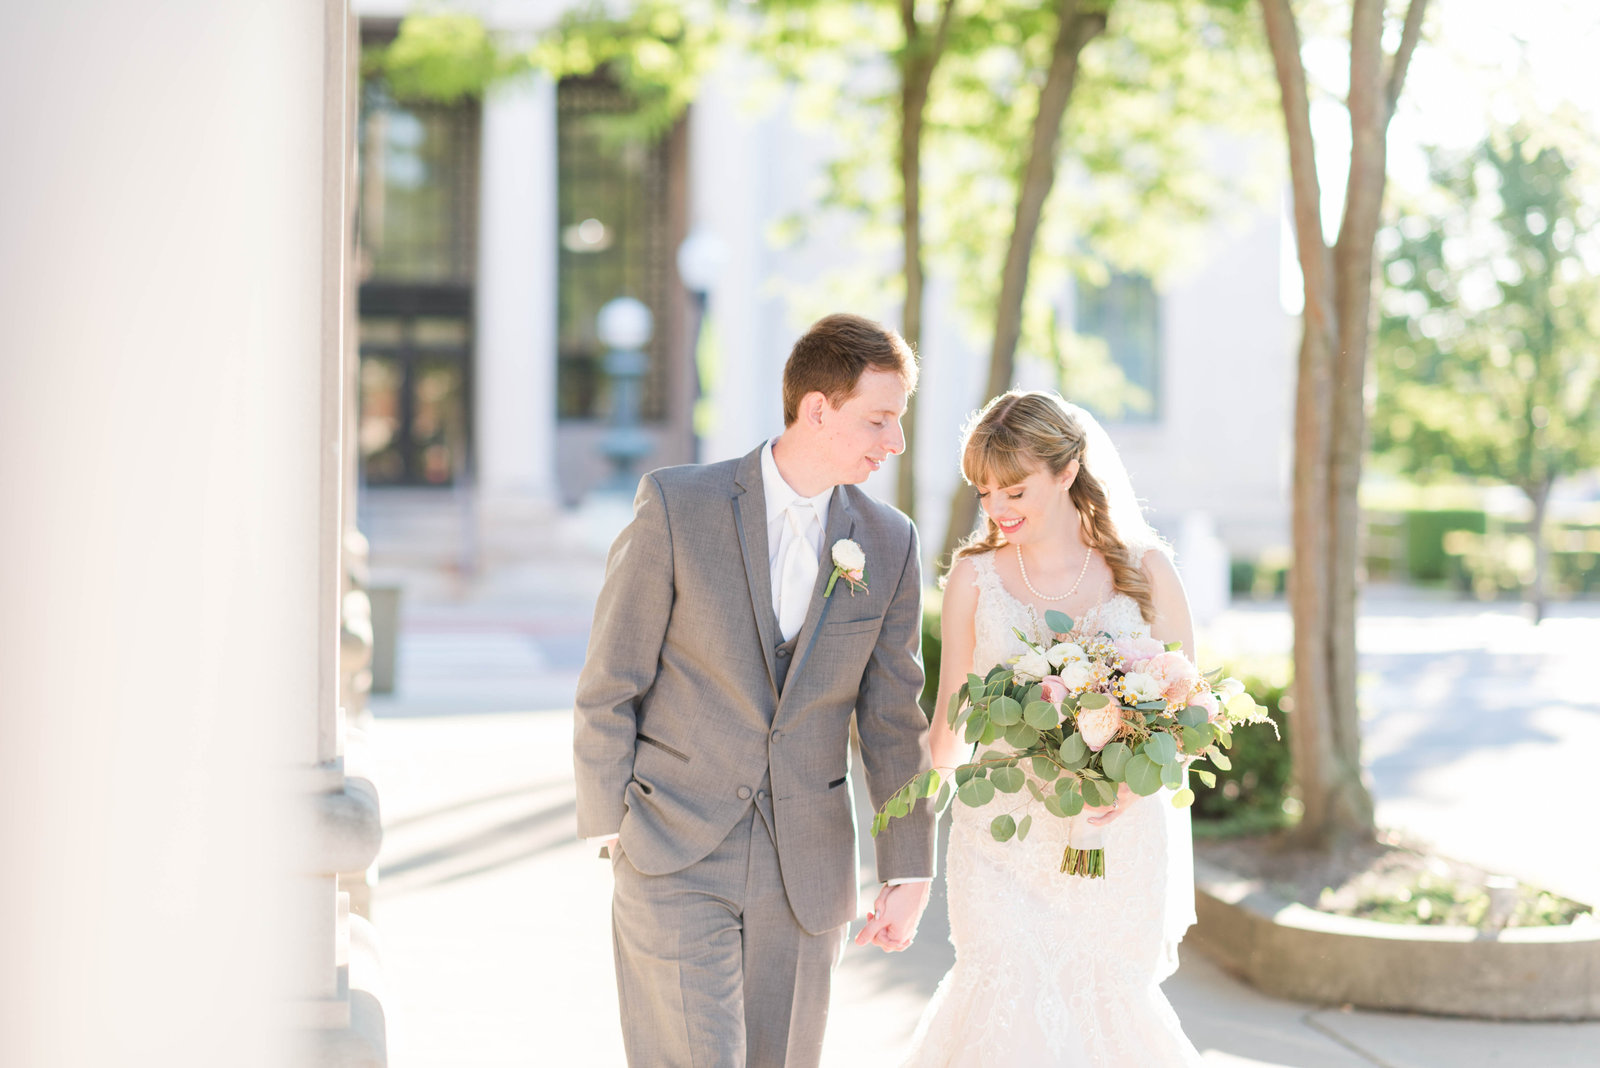 Kelsie _ Austin Wedding - Sweet Williams Photography-23